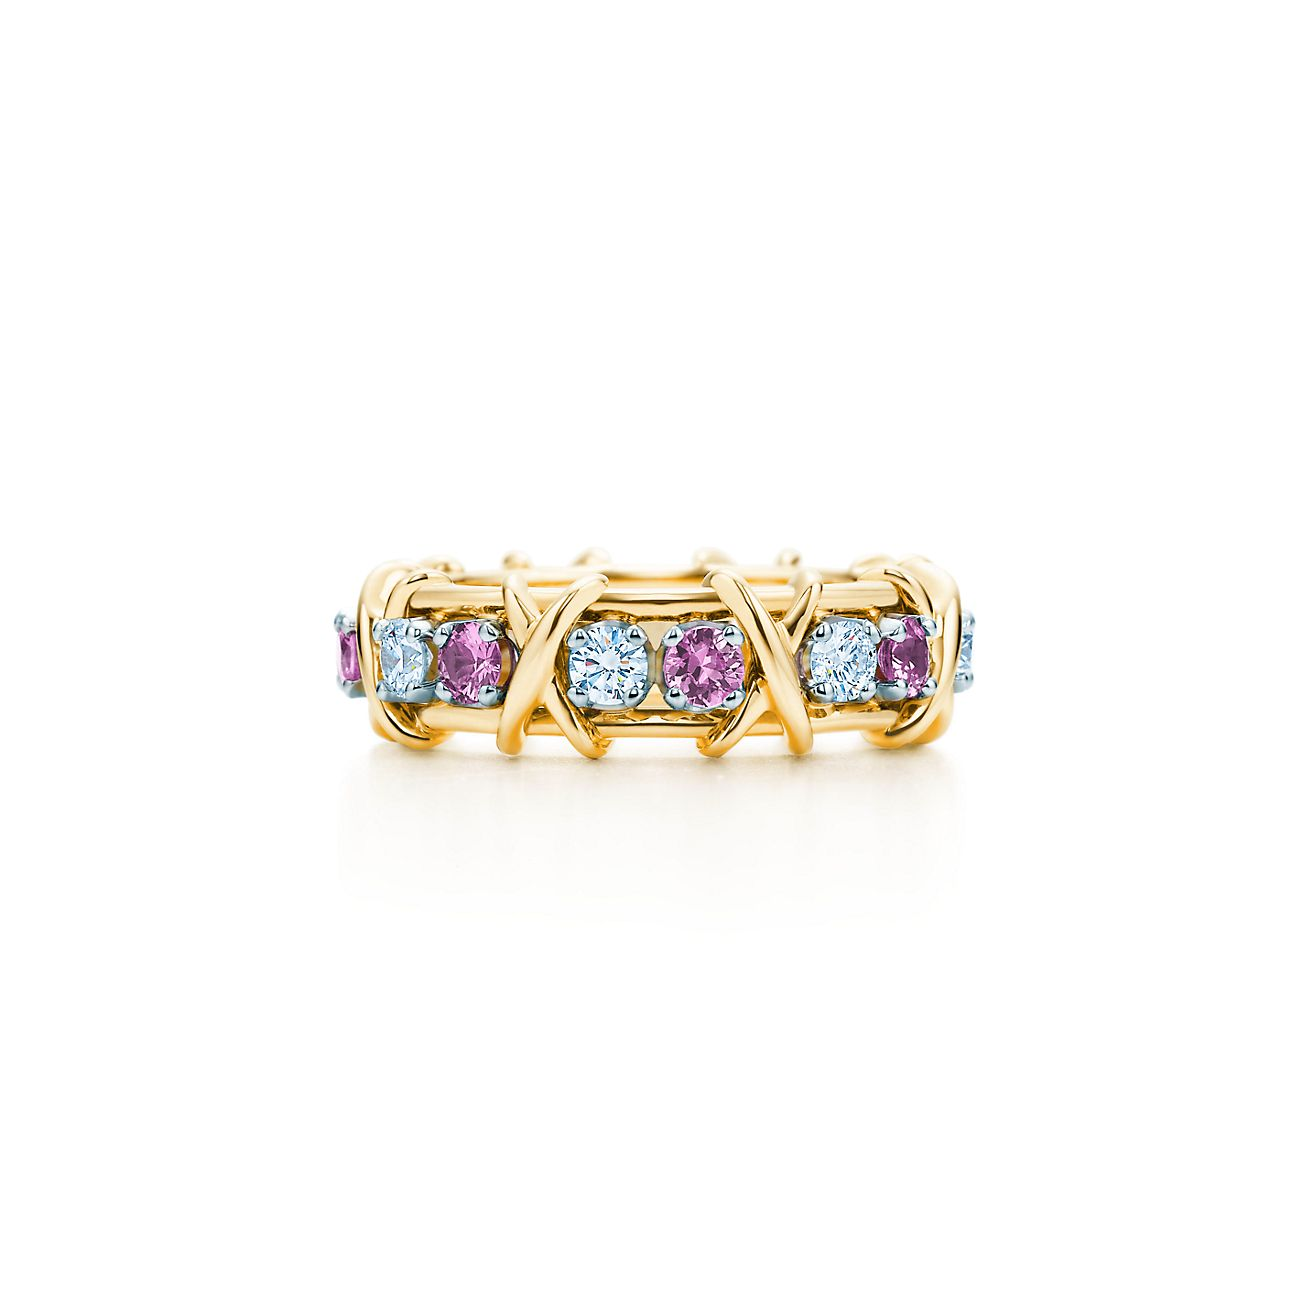 tiffany with jewelry constrain fmt wid rings id schlumberger fit co ed stone hei pink diamonds ring sixteen and